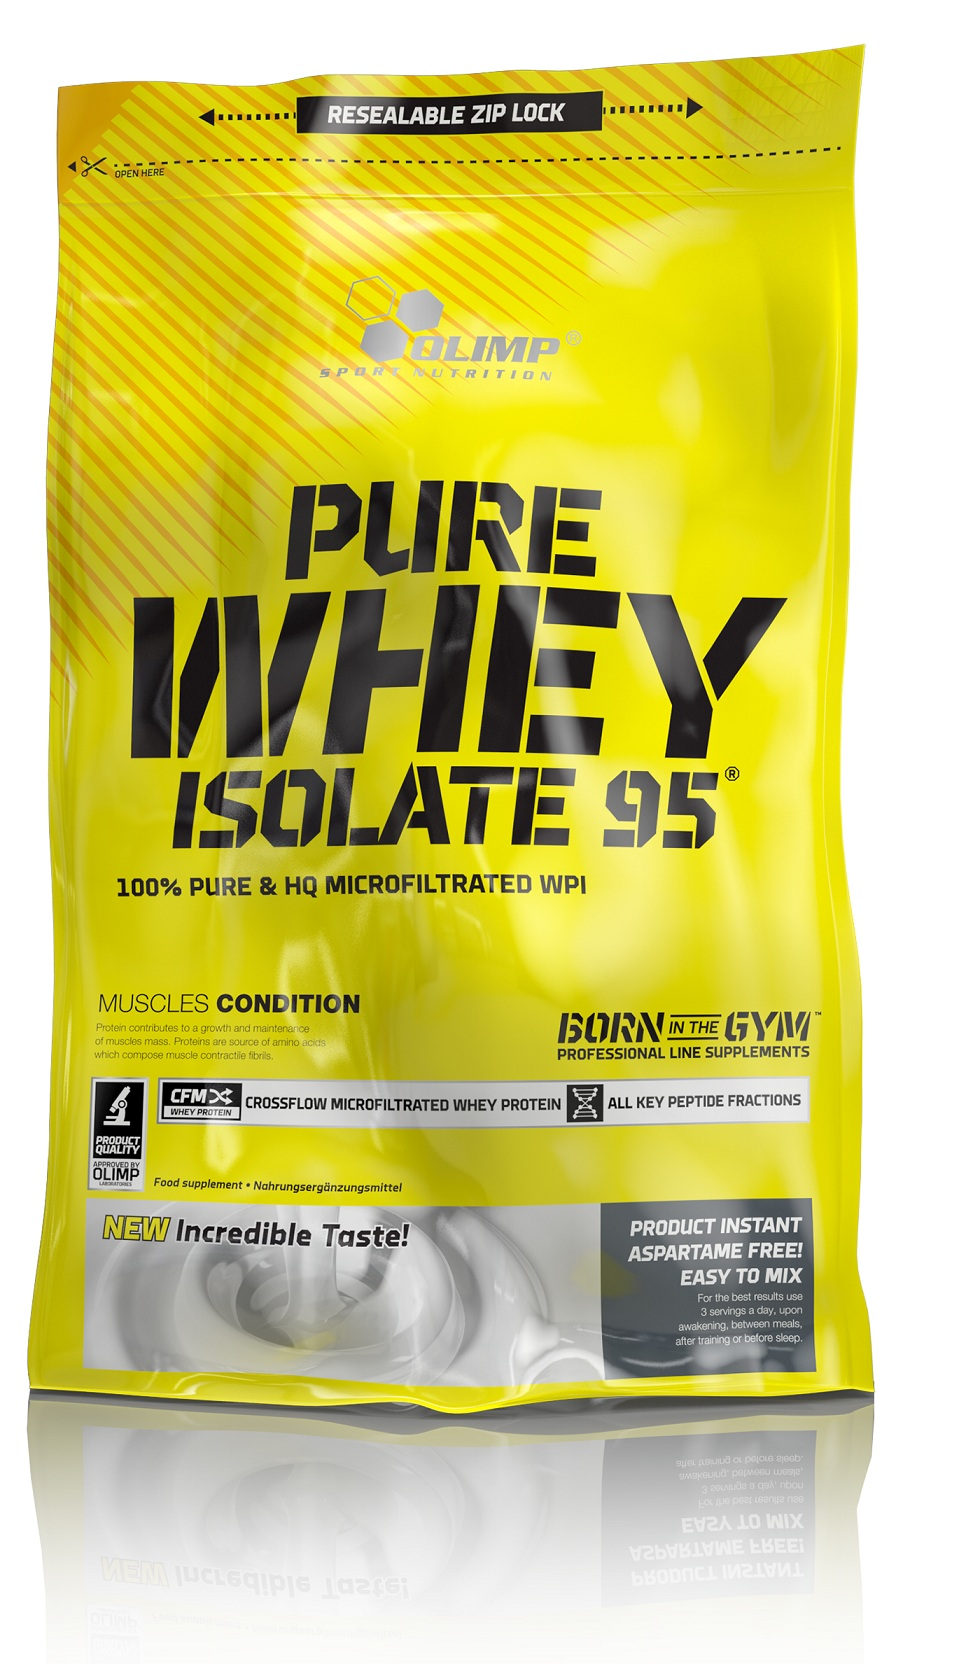 Pure Whey Isolate 95 Olimp (1800 g)